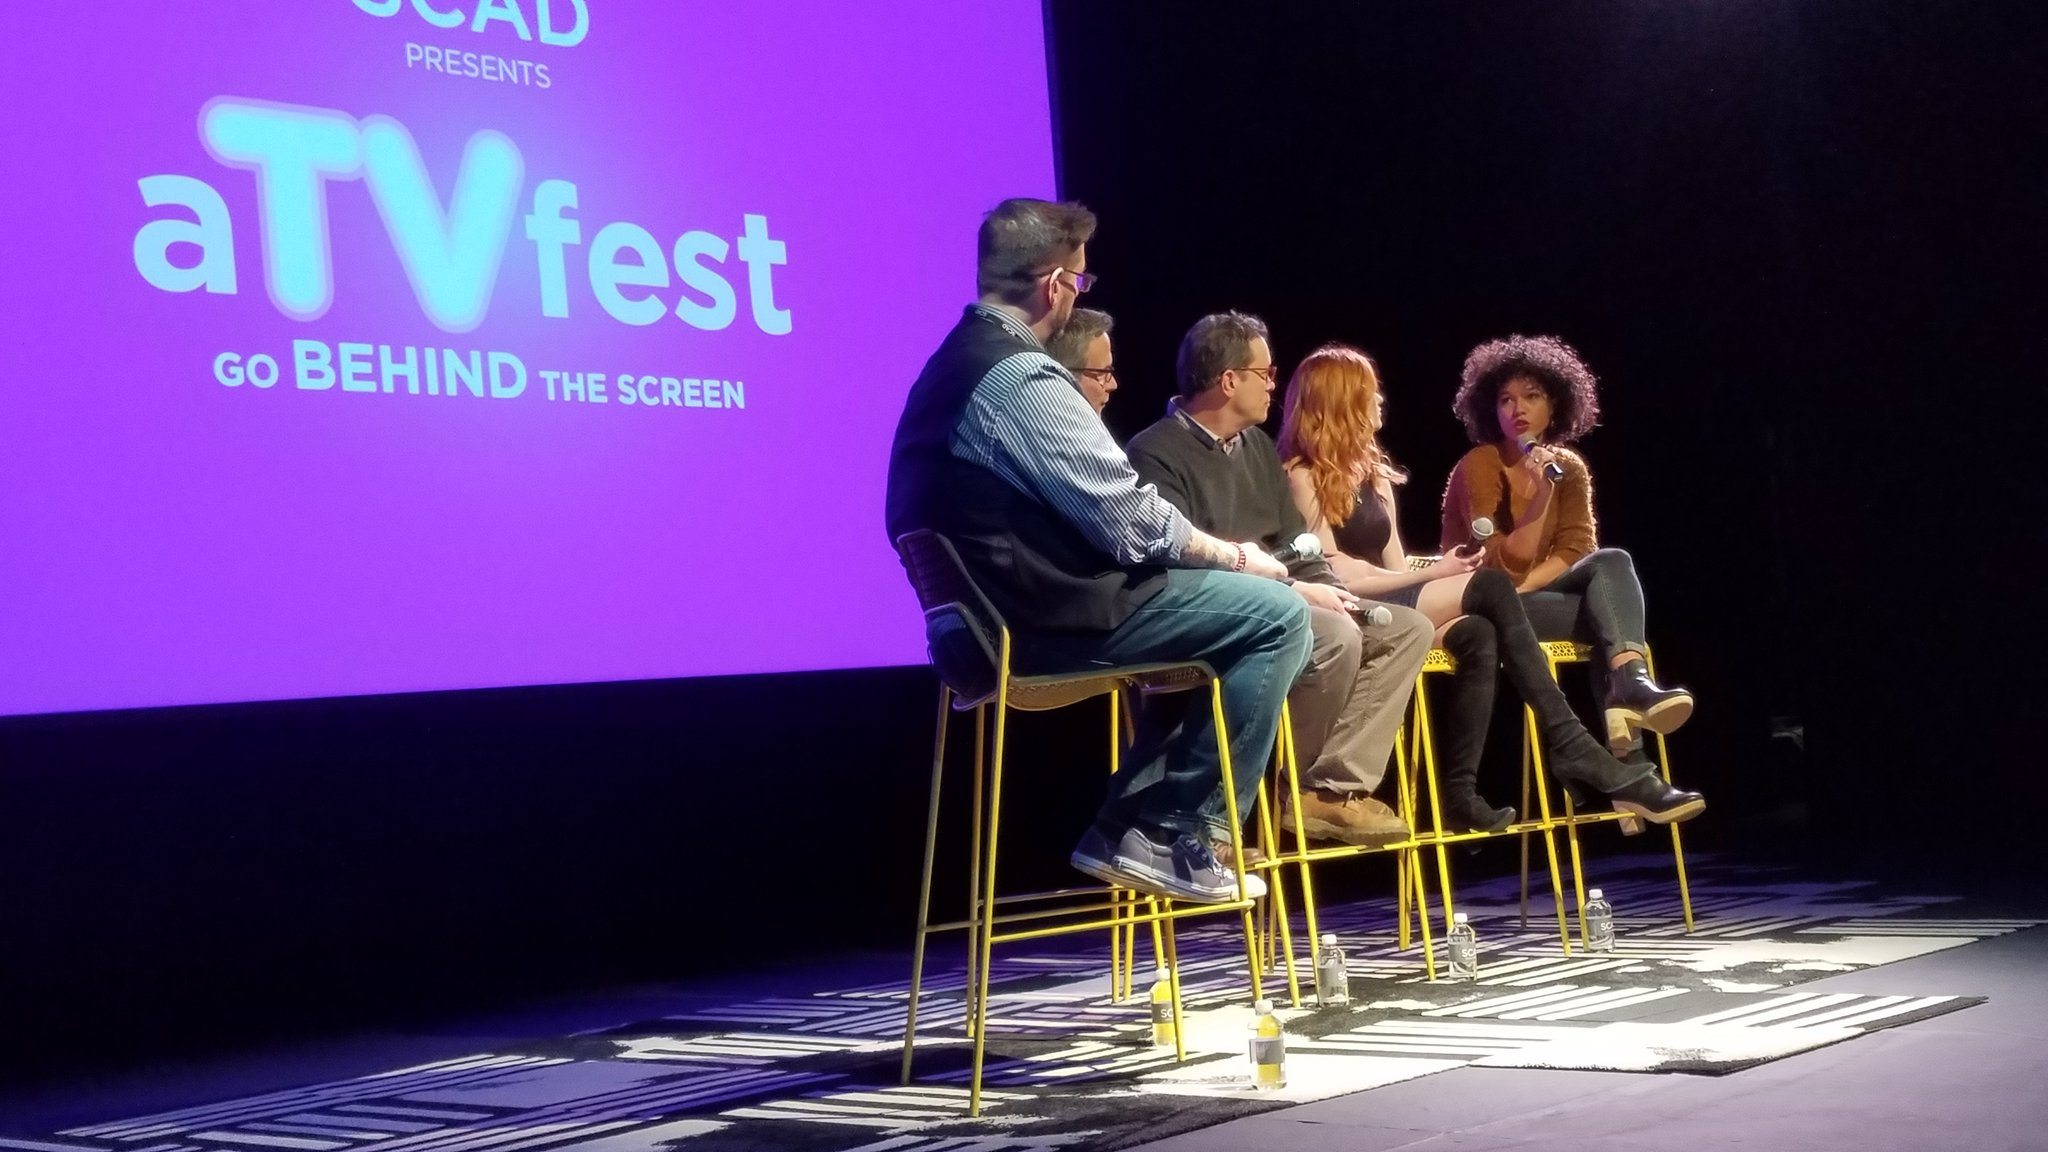 Today's last day of #ATVFest was the absolute best with the @ShadowhuntersTV executive producers & cast! https://t.co/VX1xtc6ZXg